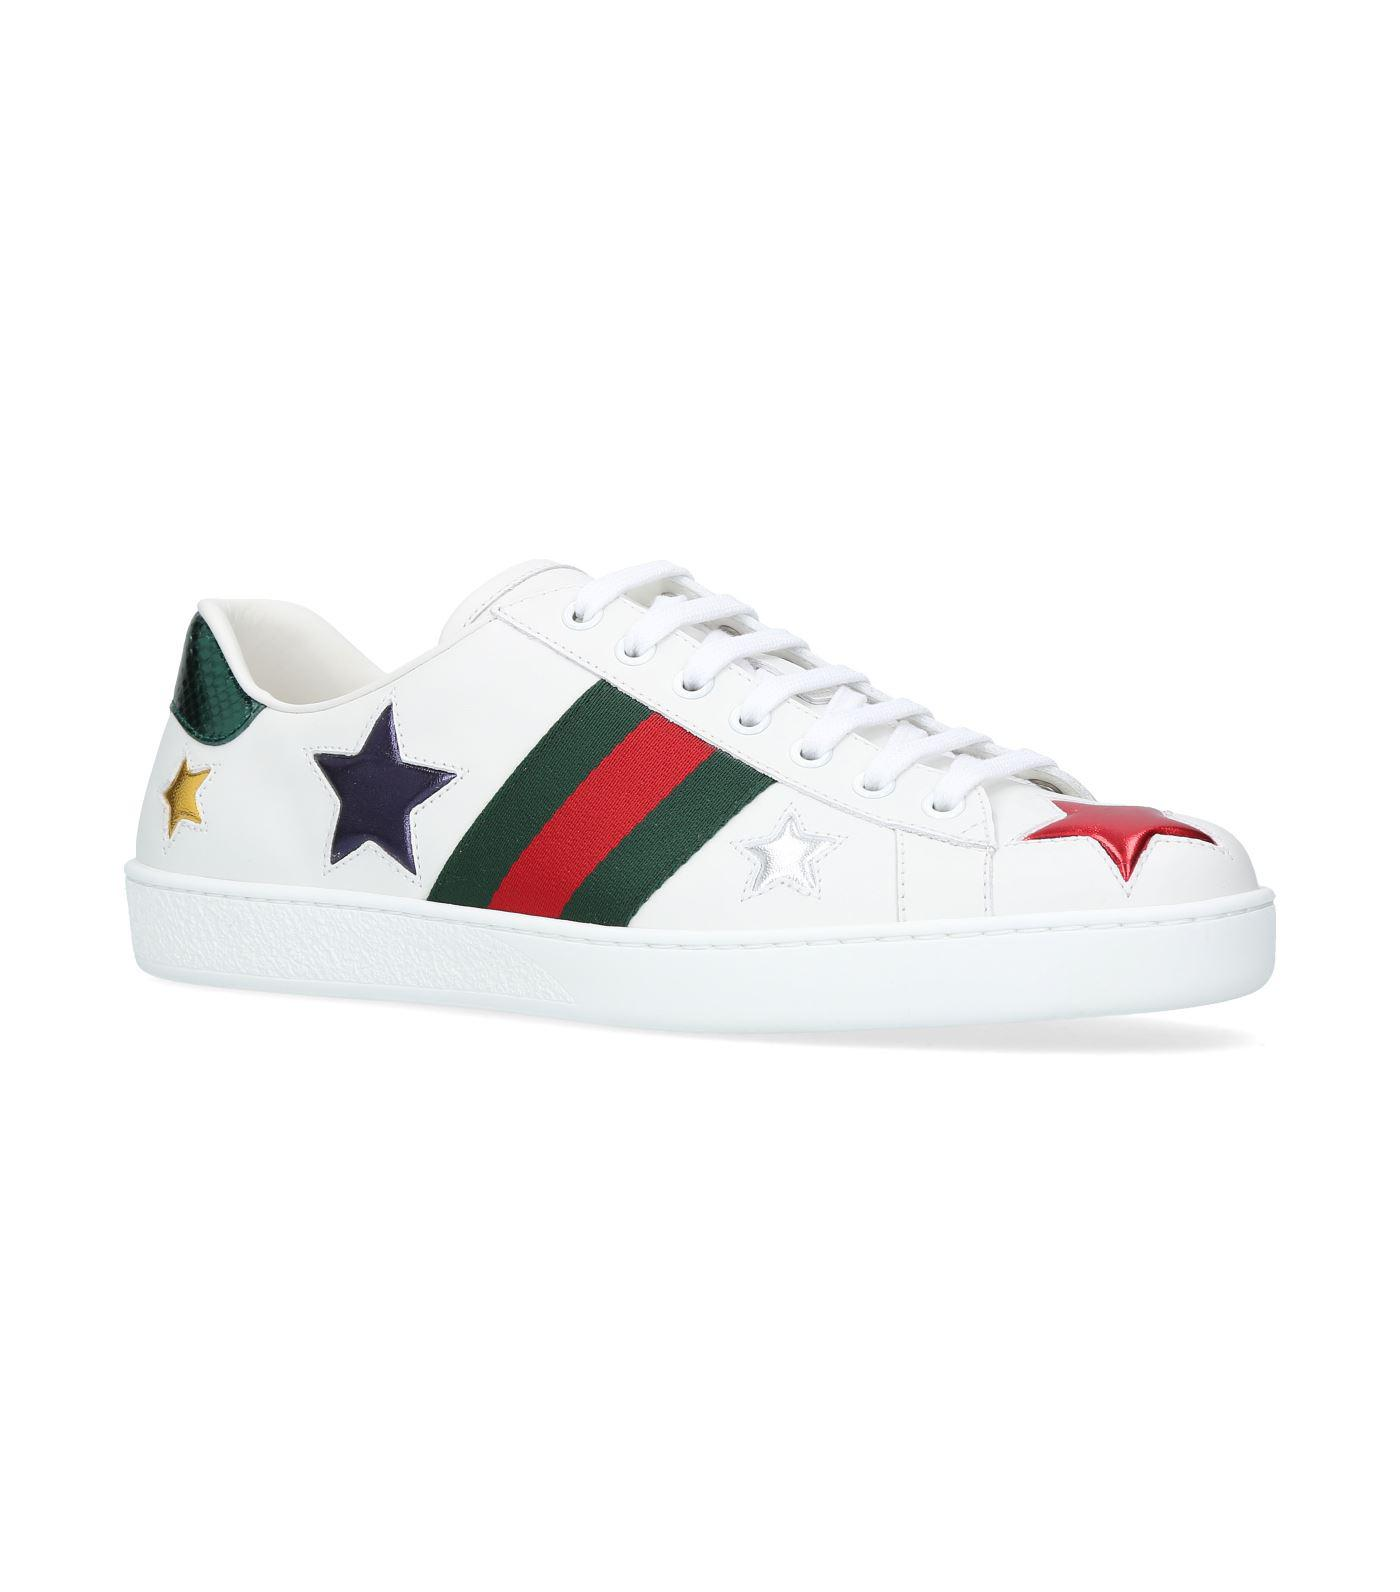 3204cc588 Lyst - Gucci Ace Star Low-top Sneakers